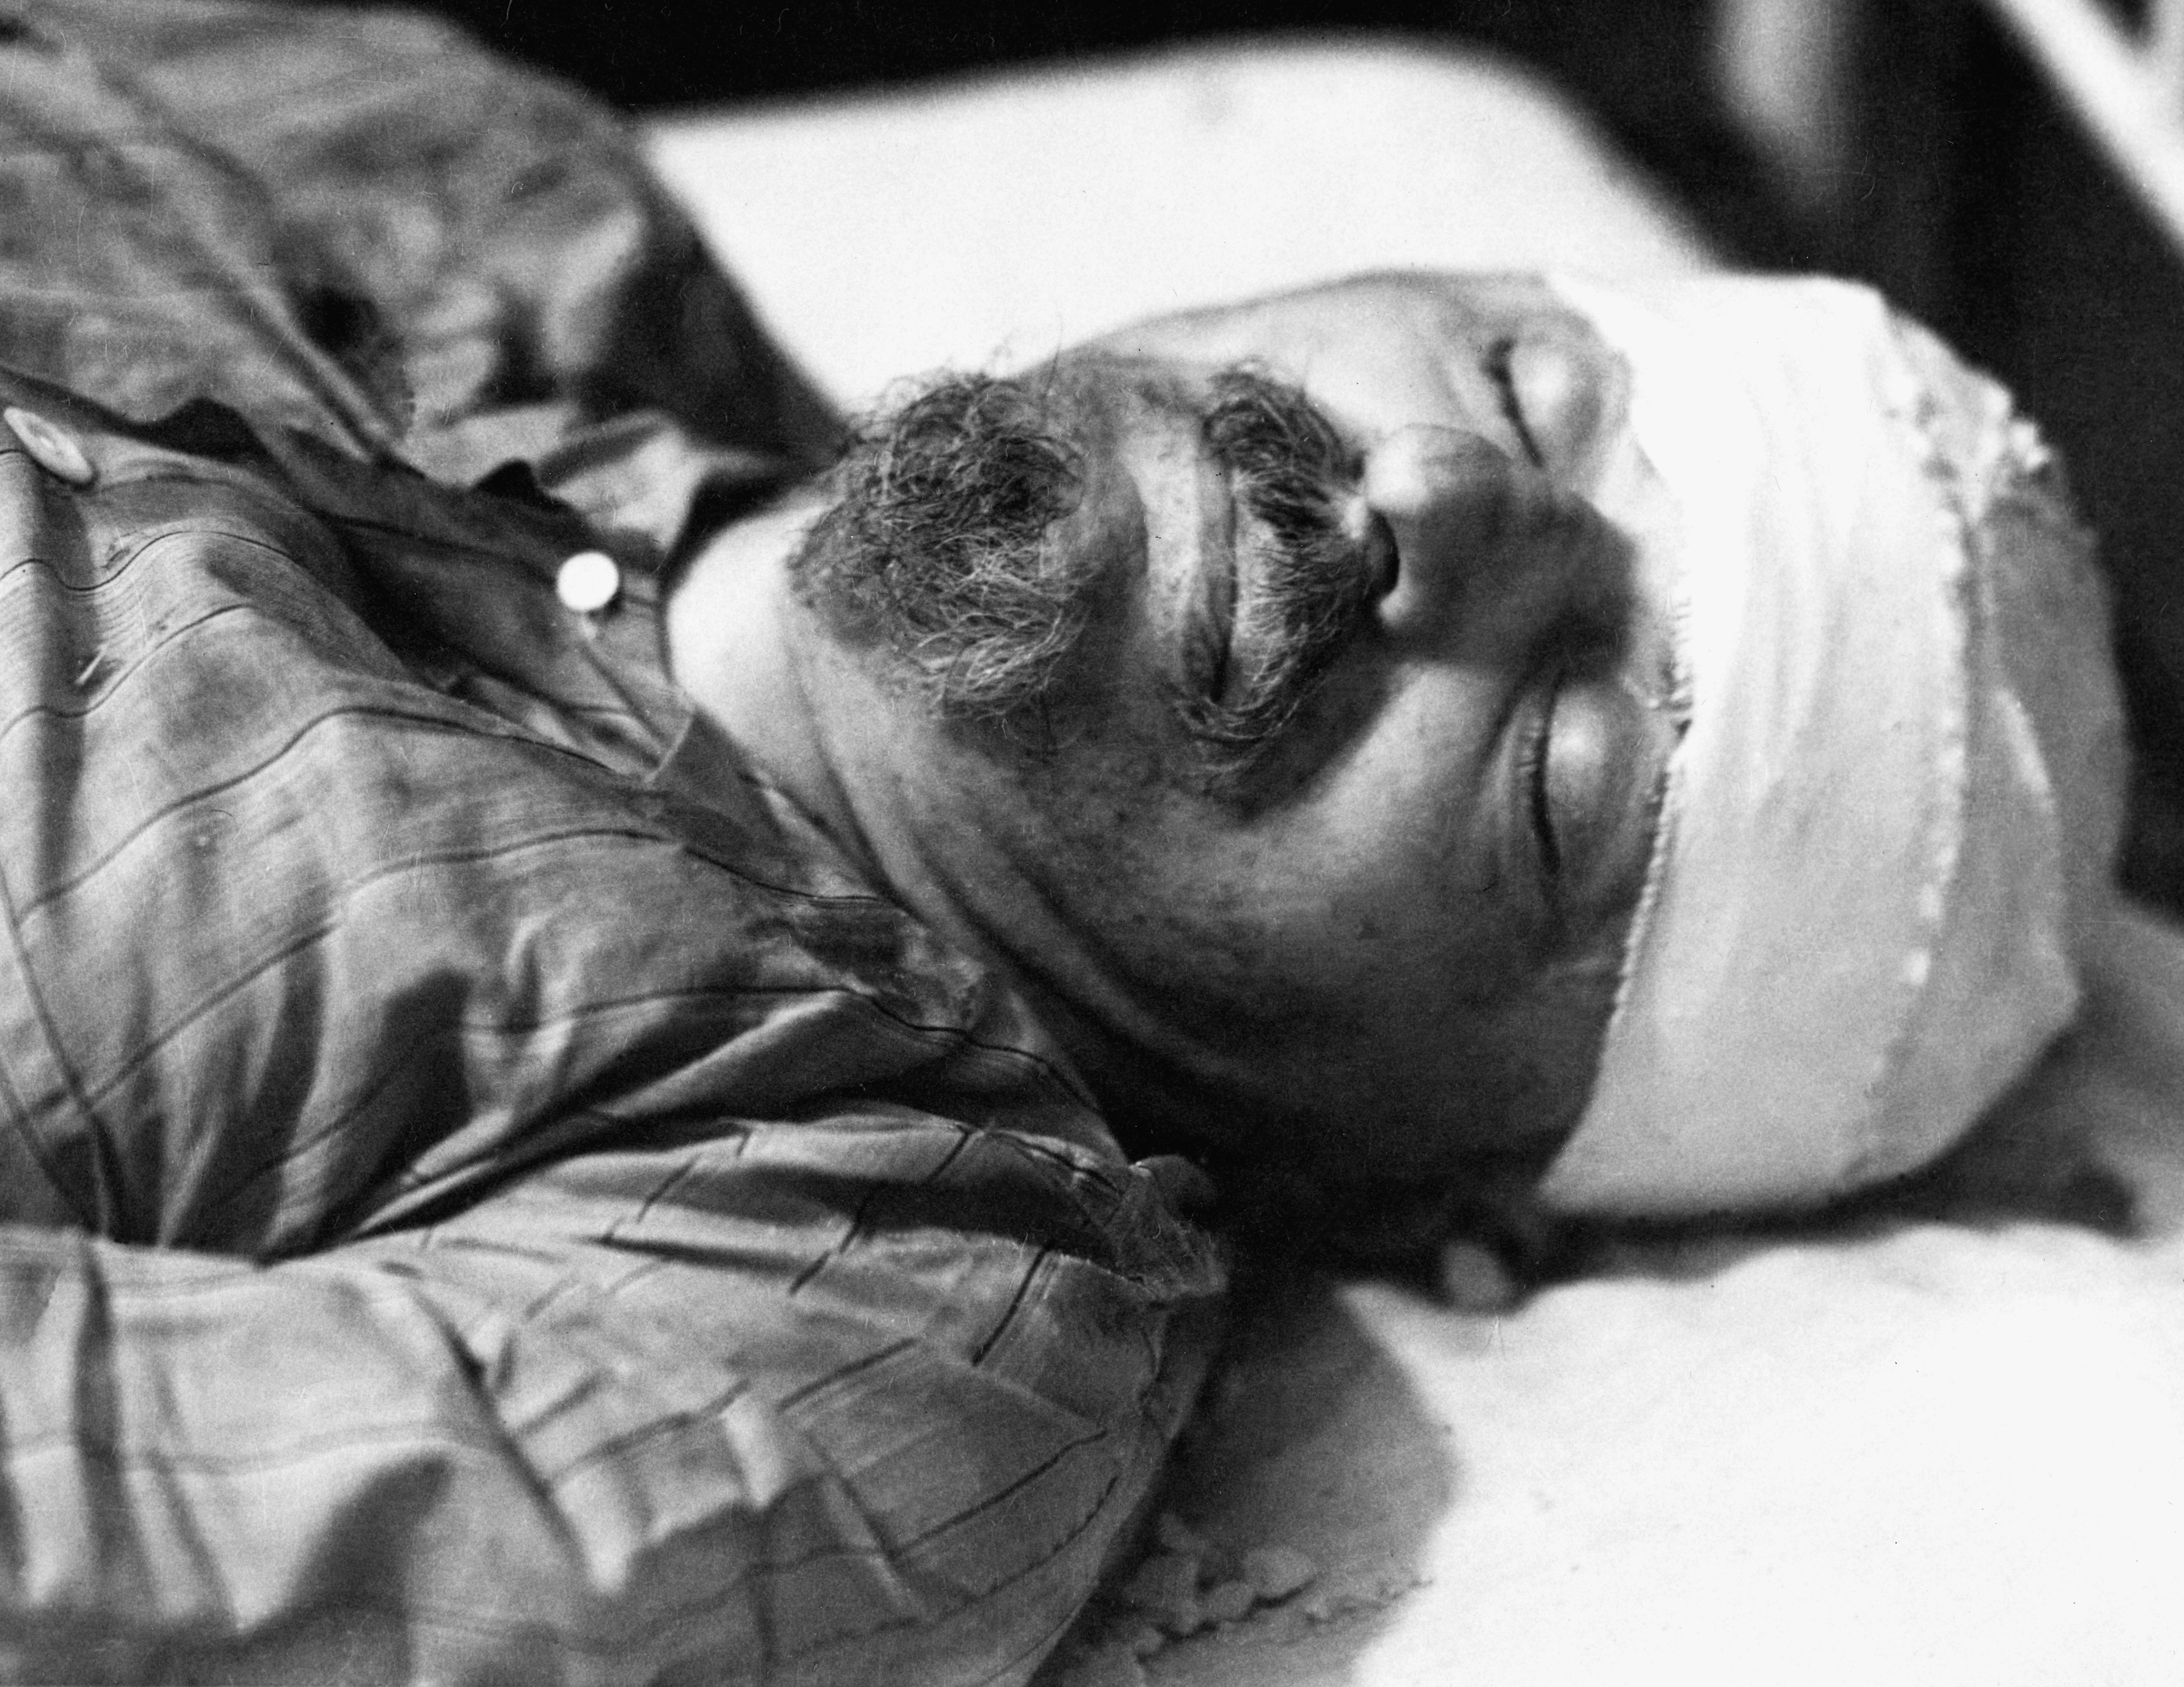 Russian revolutionary Leon Trotsky (1879 - 1940) dies in hospital in Mexico City, 20th August 1940. He had been attacked by NKVD agent Ramon Mercader with an ice axe, and died the next day. (Photo by Enrique Diaz/Galerie Bilderwelt/Getty Images)